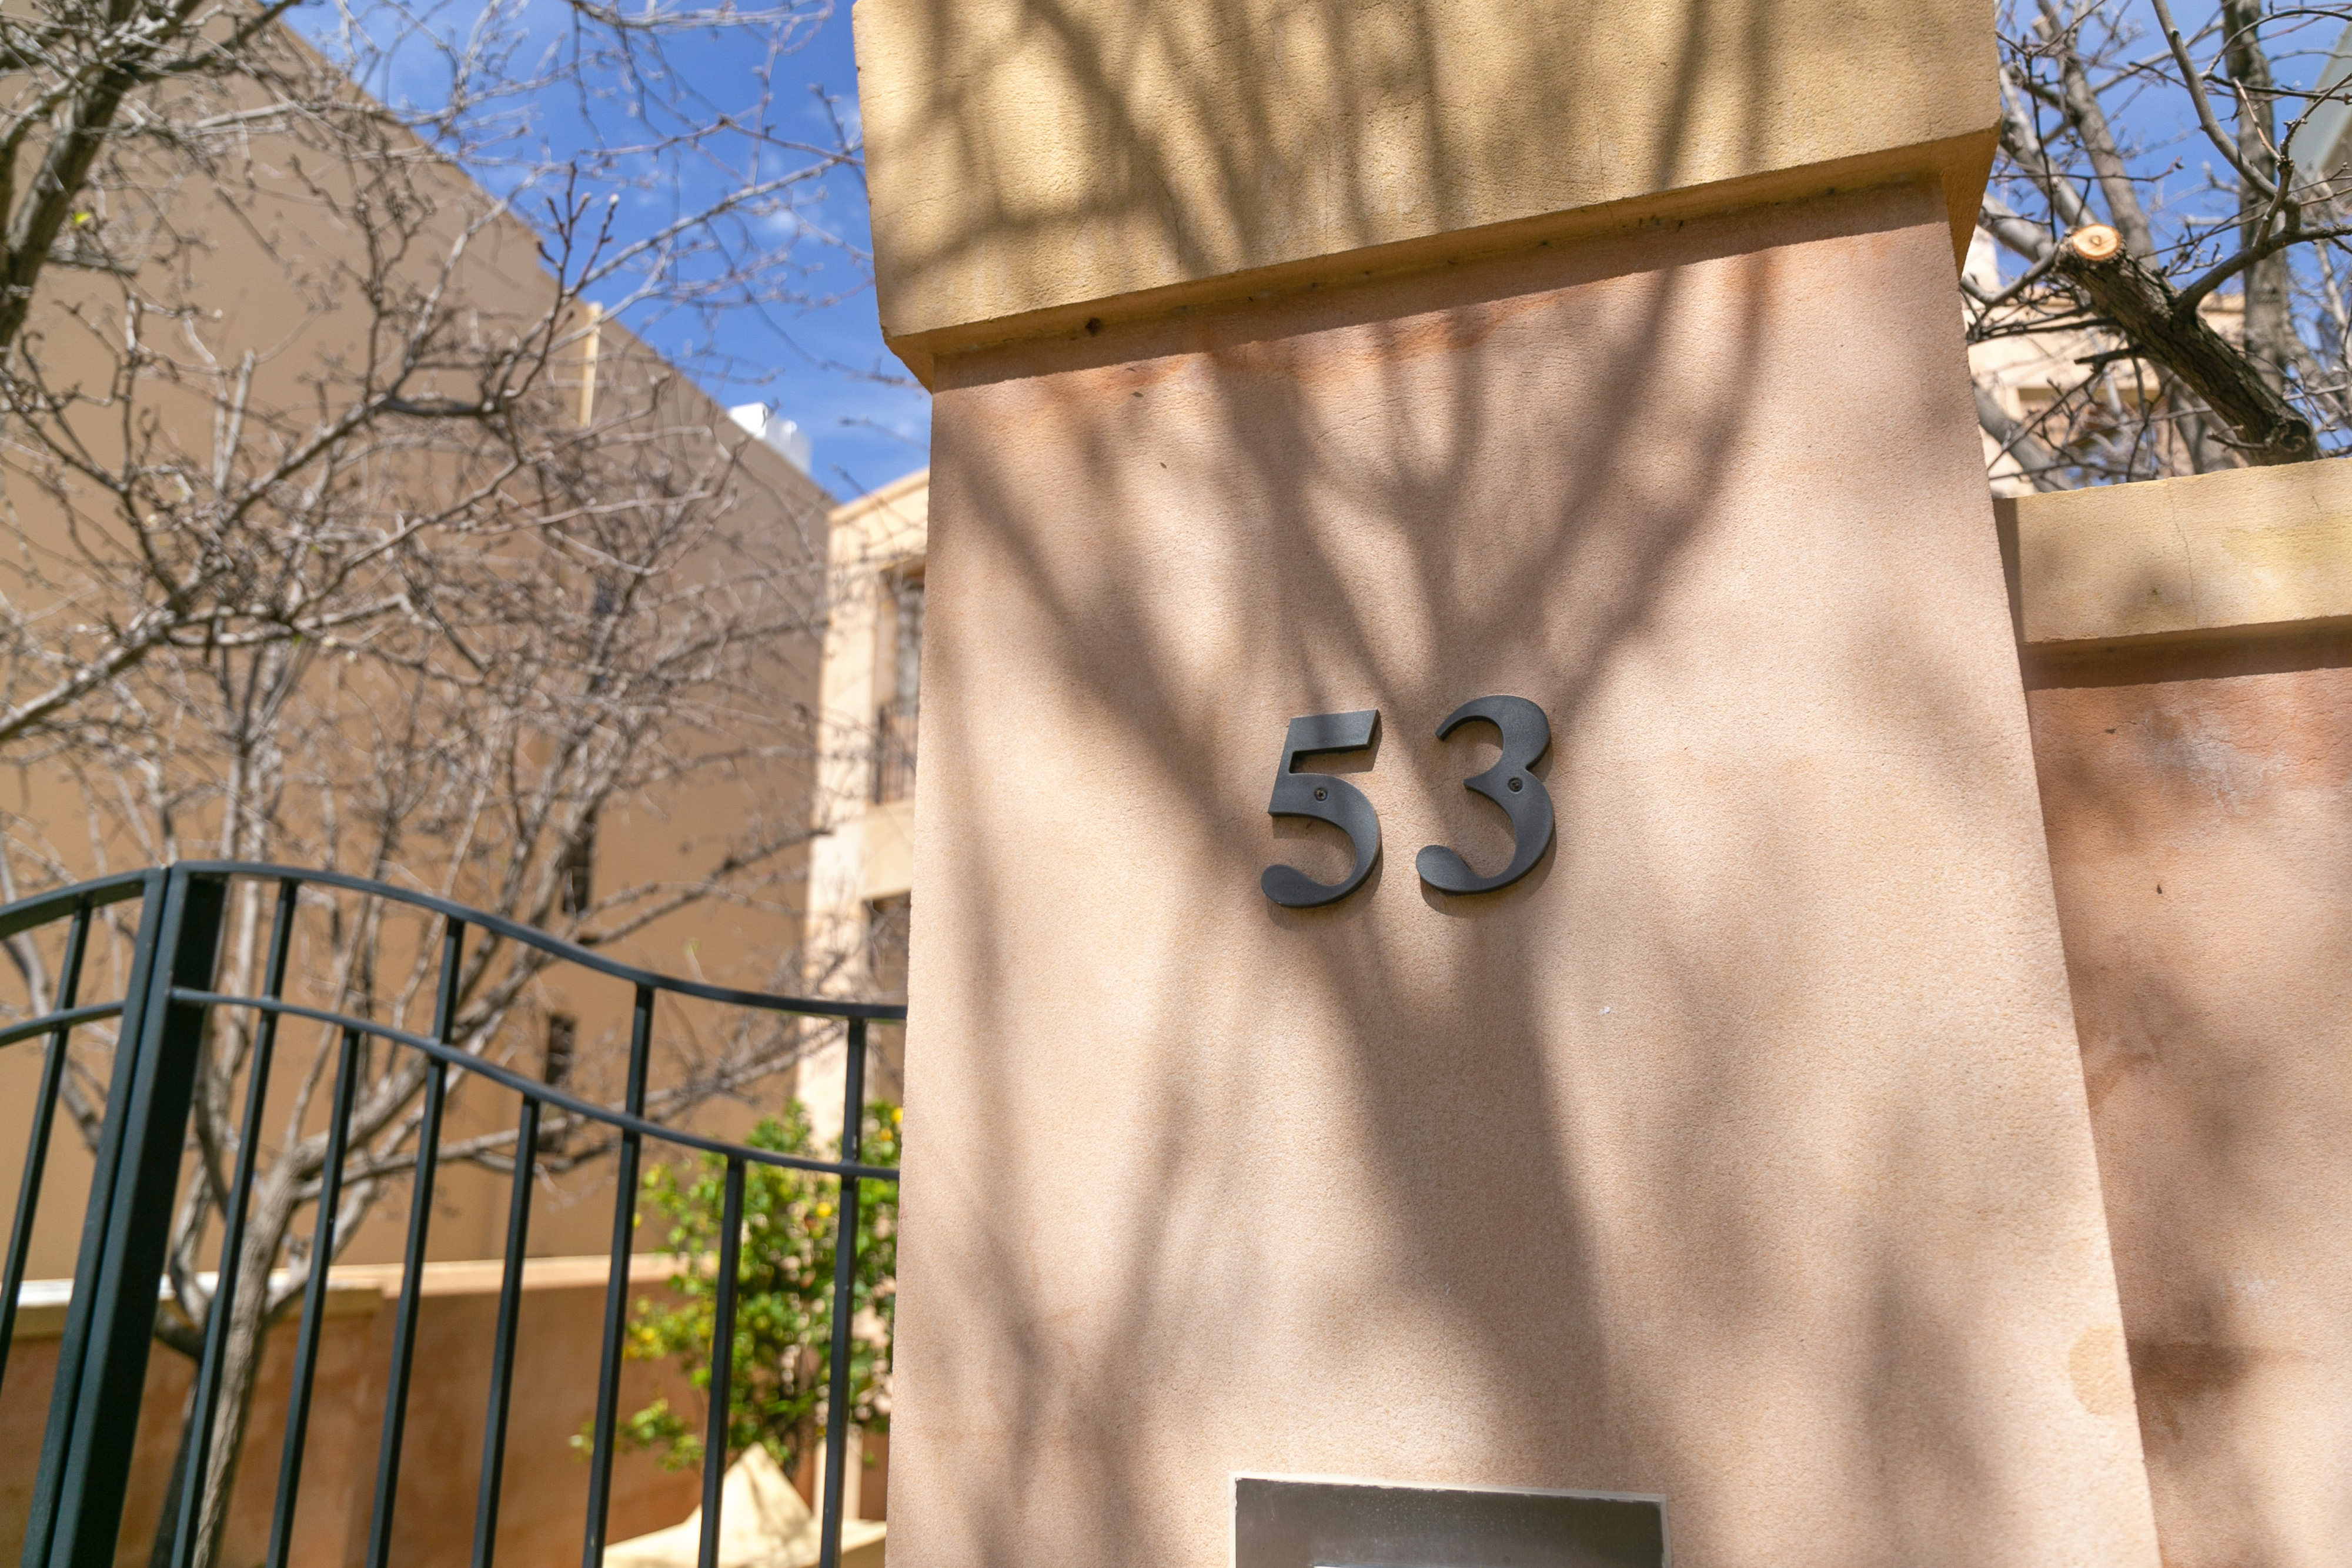 PRINT 5 53 Mount St, West Perth 01